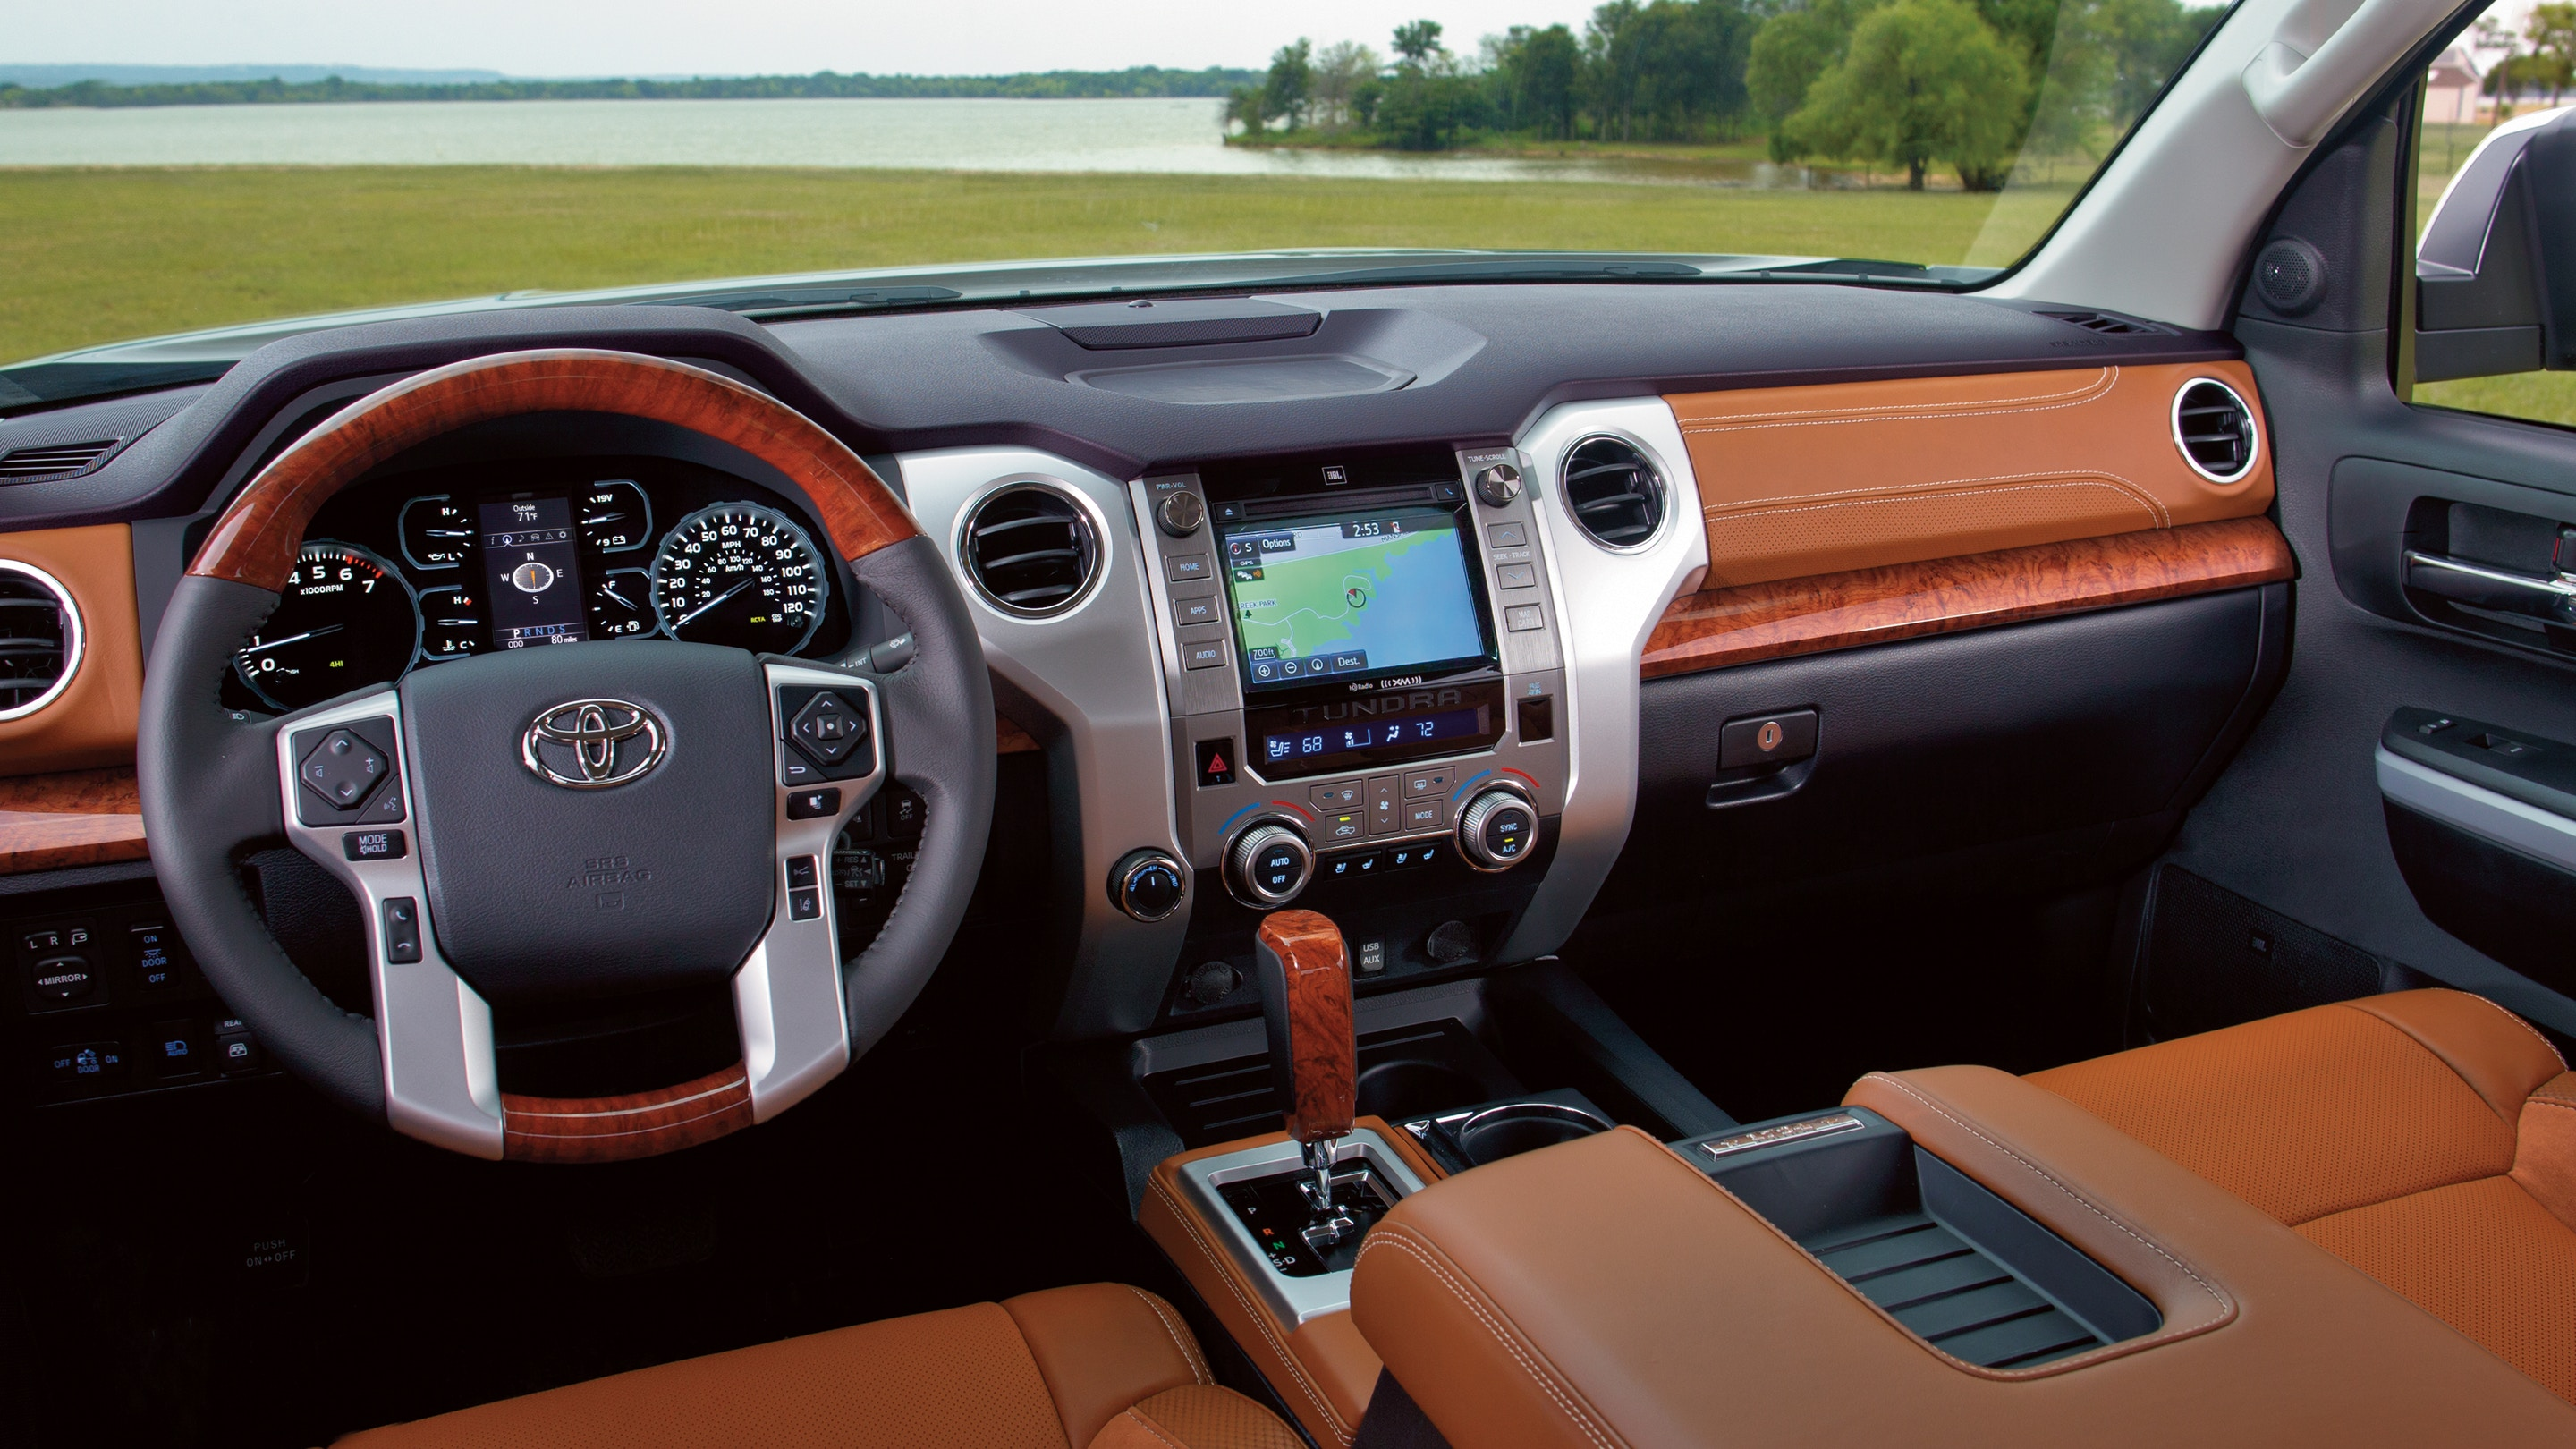 Plethora of Tech Features in the Toyota Tundra